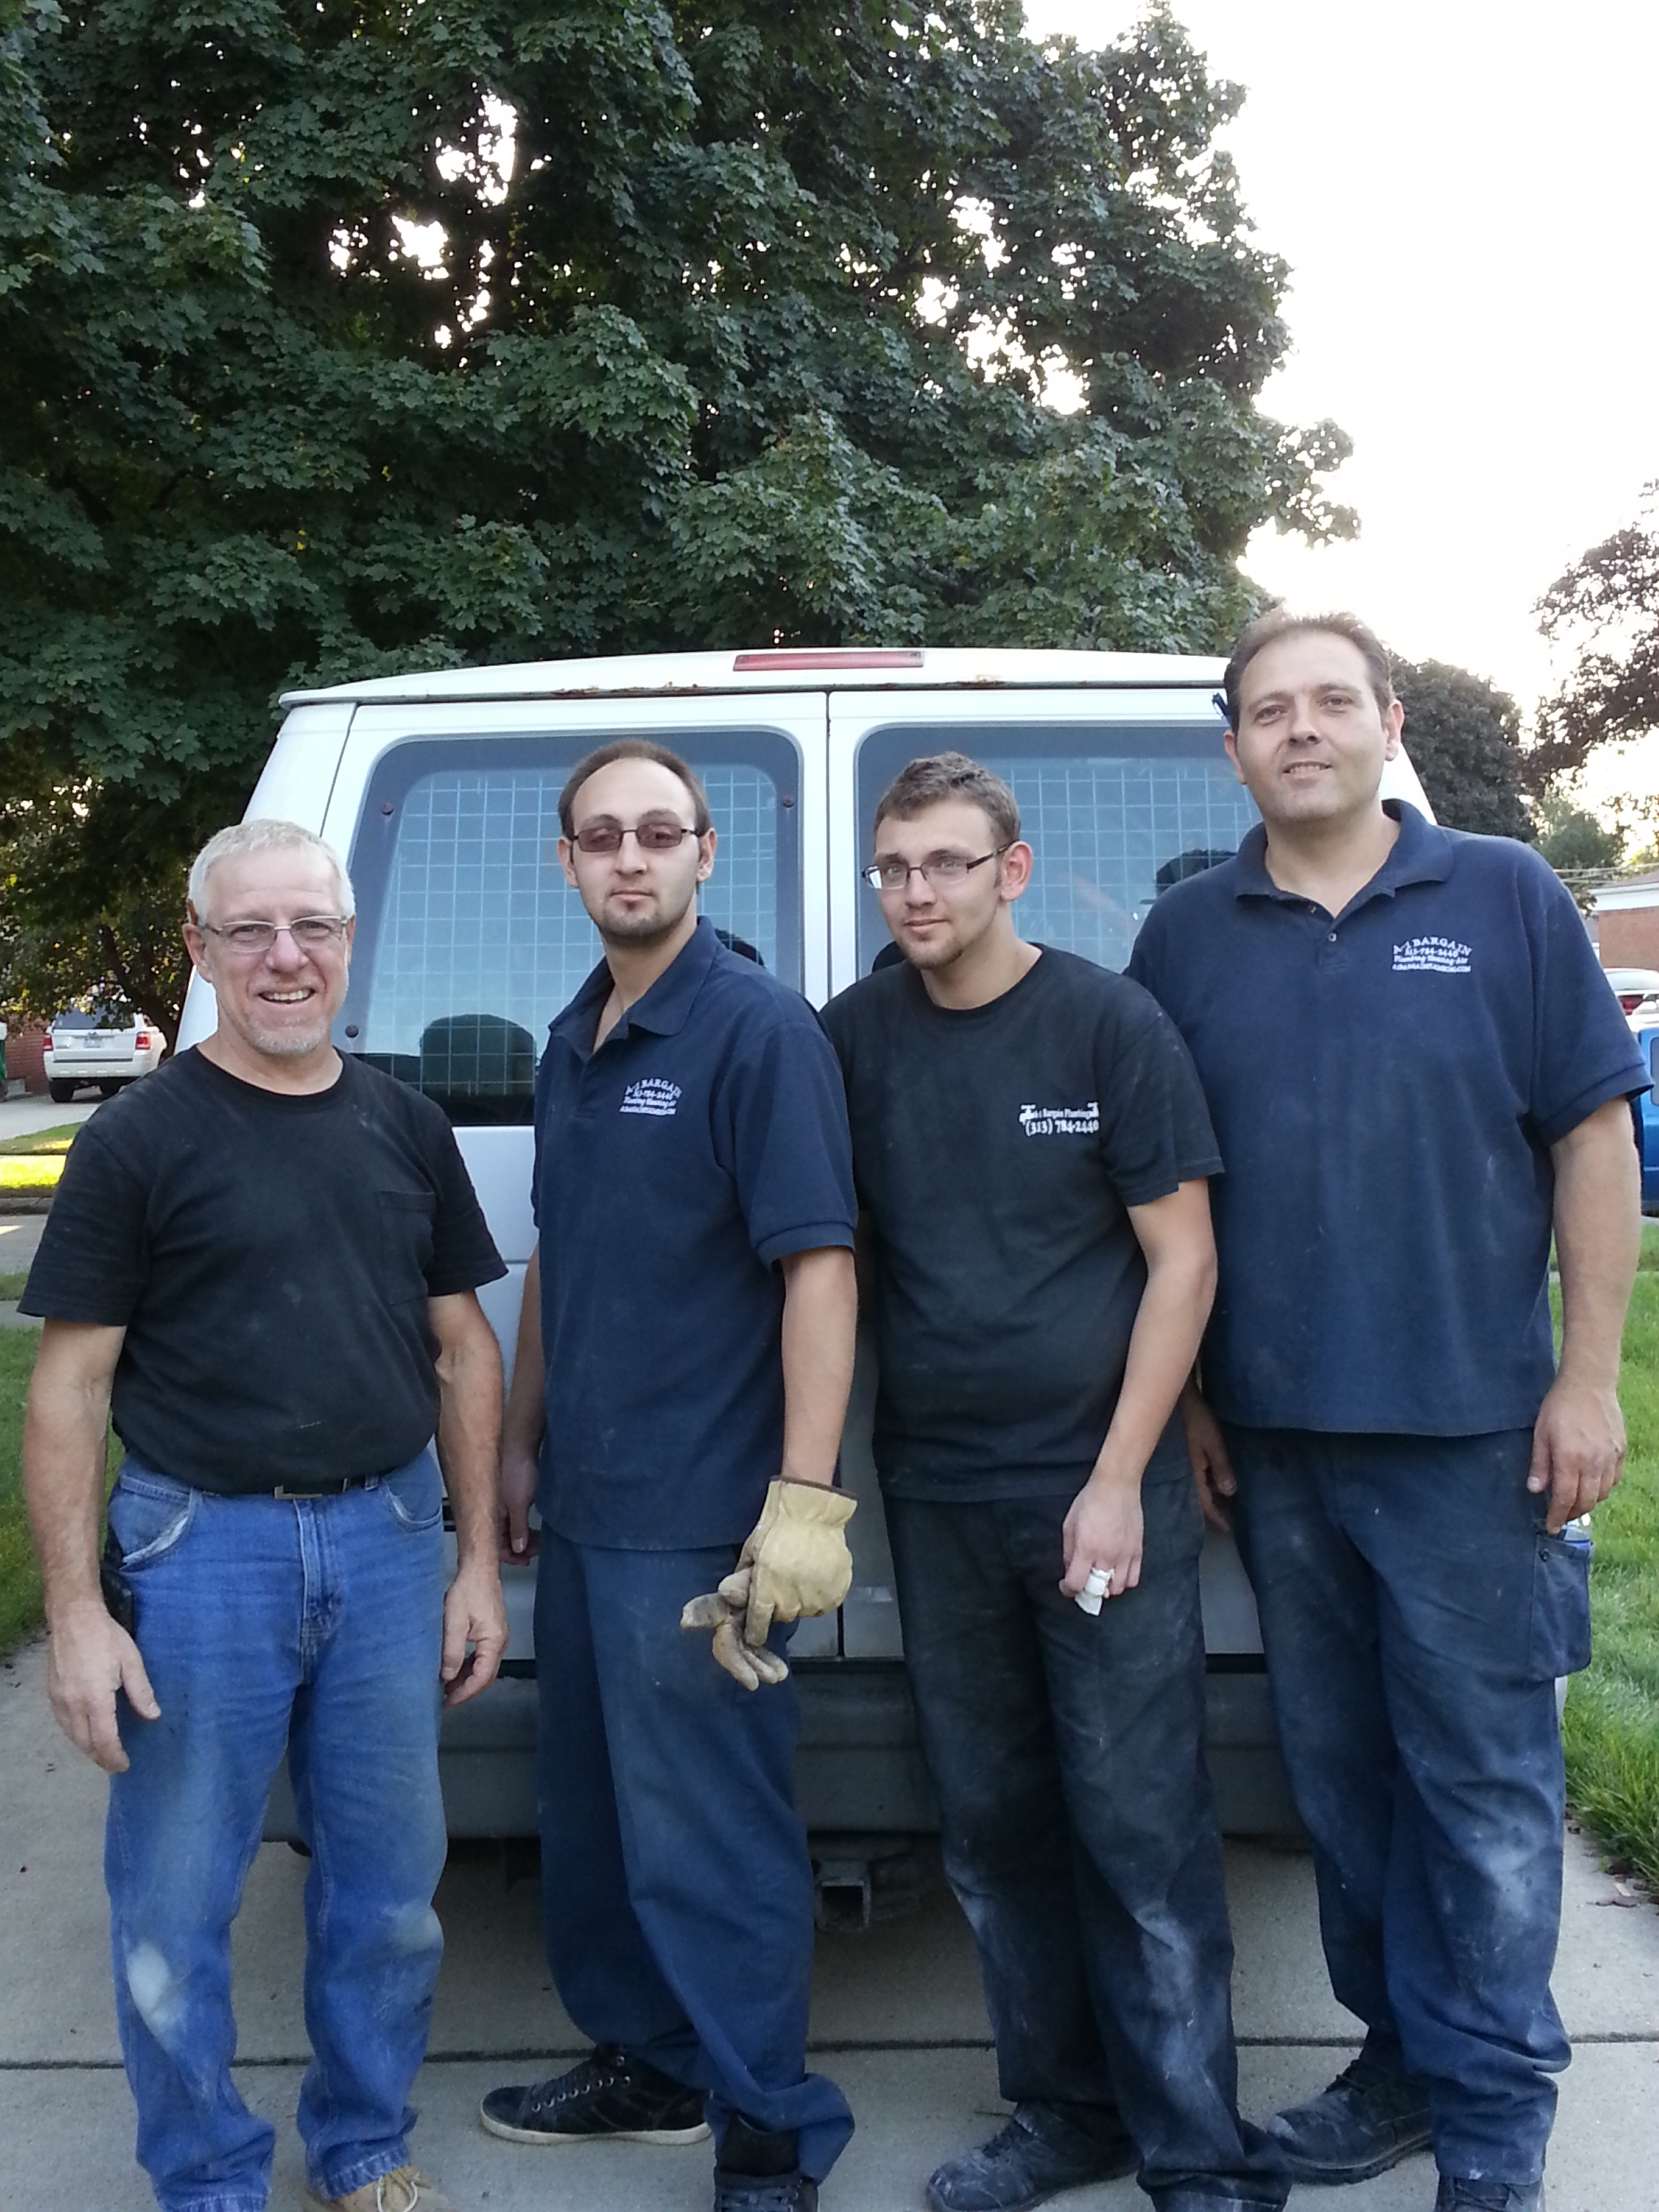 plumbing companies heating quality t tmark me high services mark repair near cooling